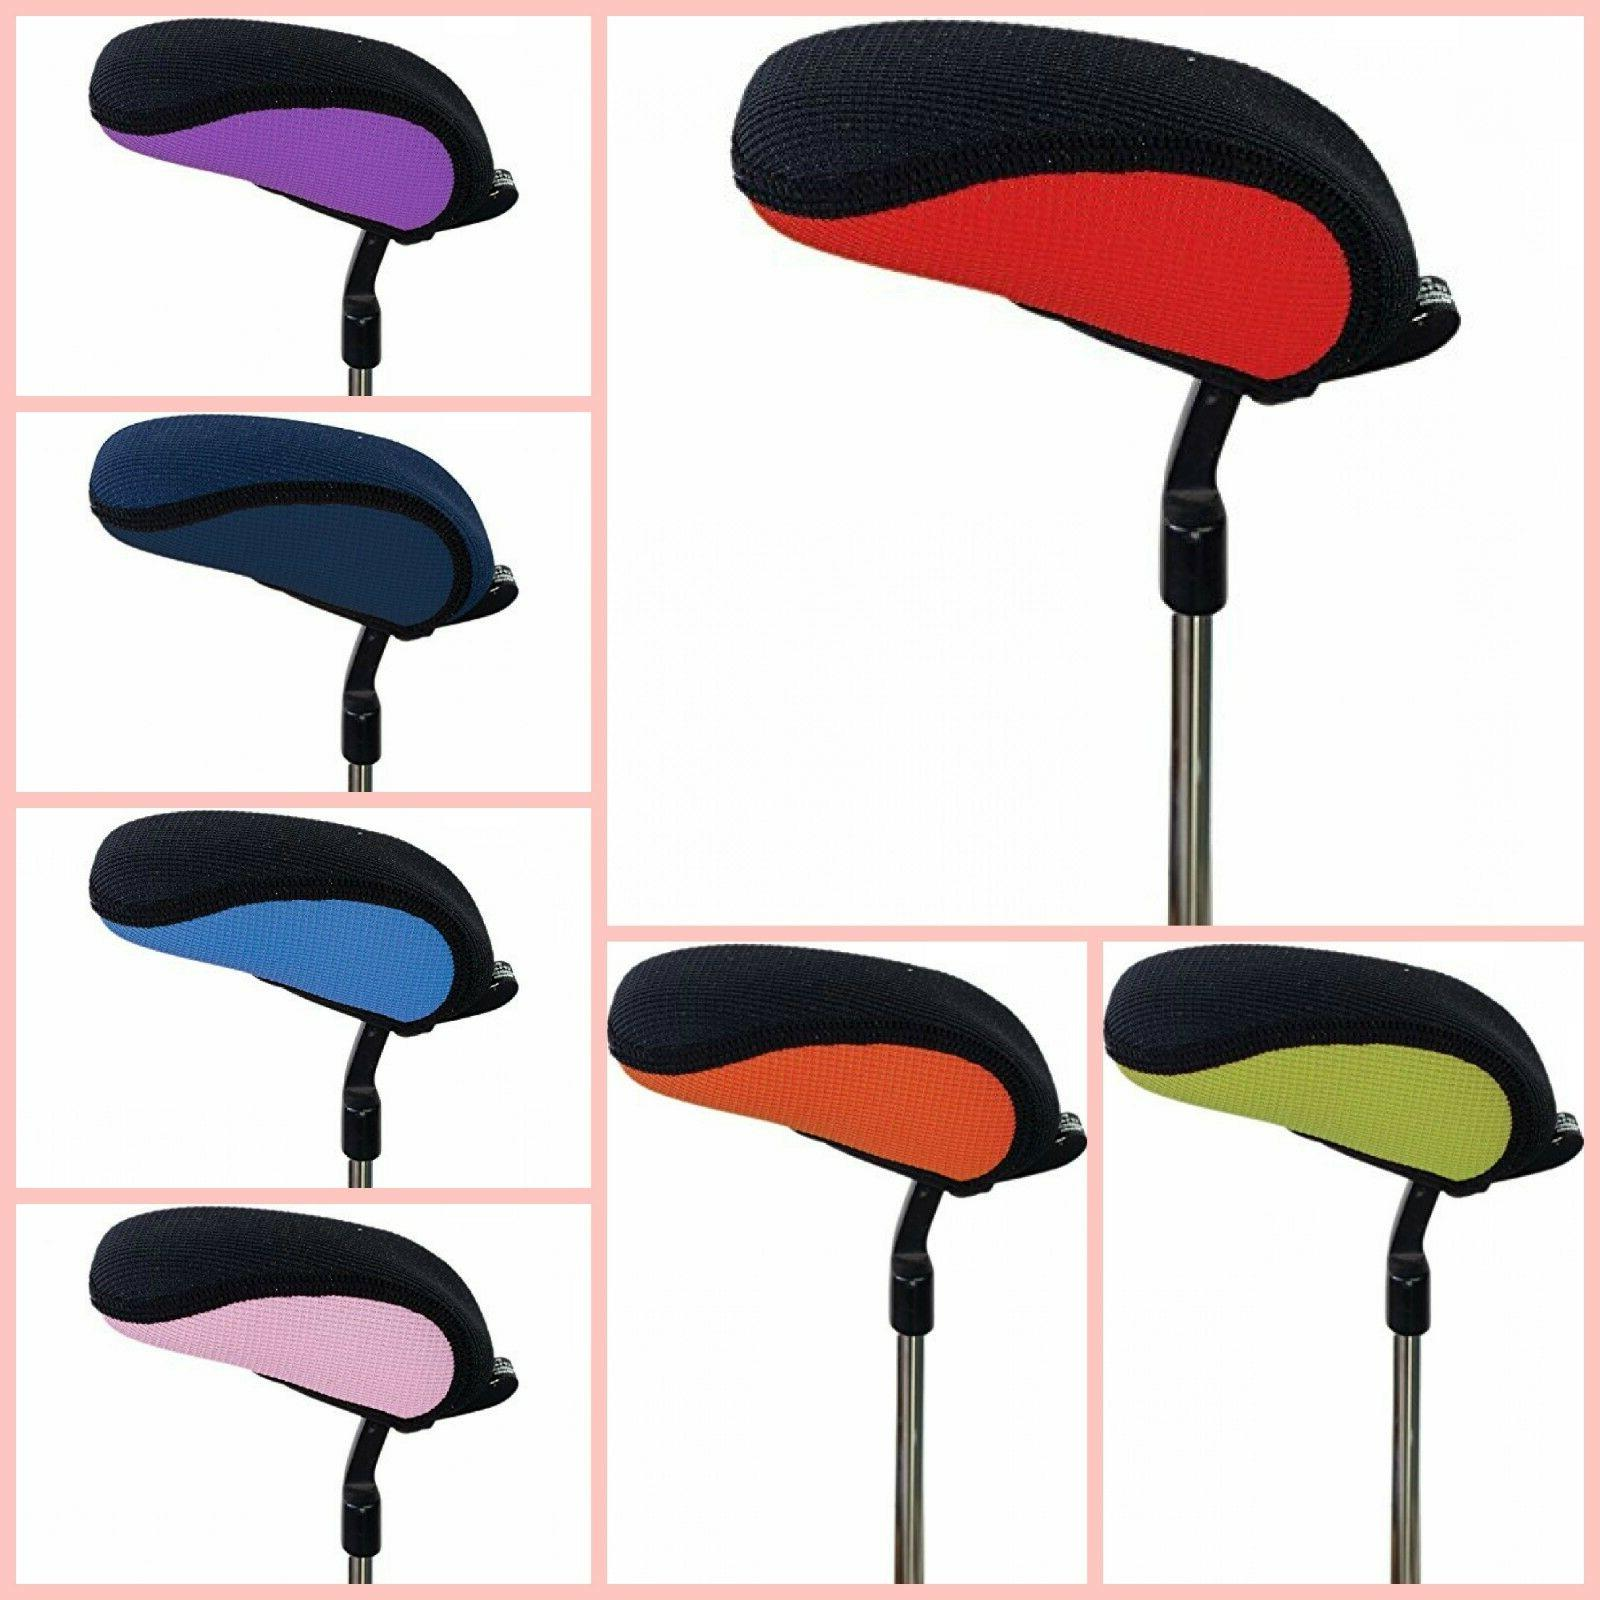 putter headcover golf accessories protector head covers